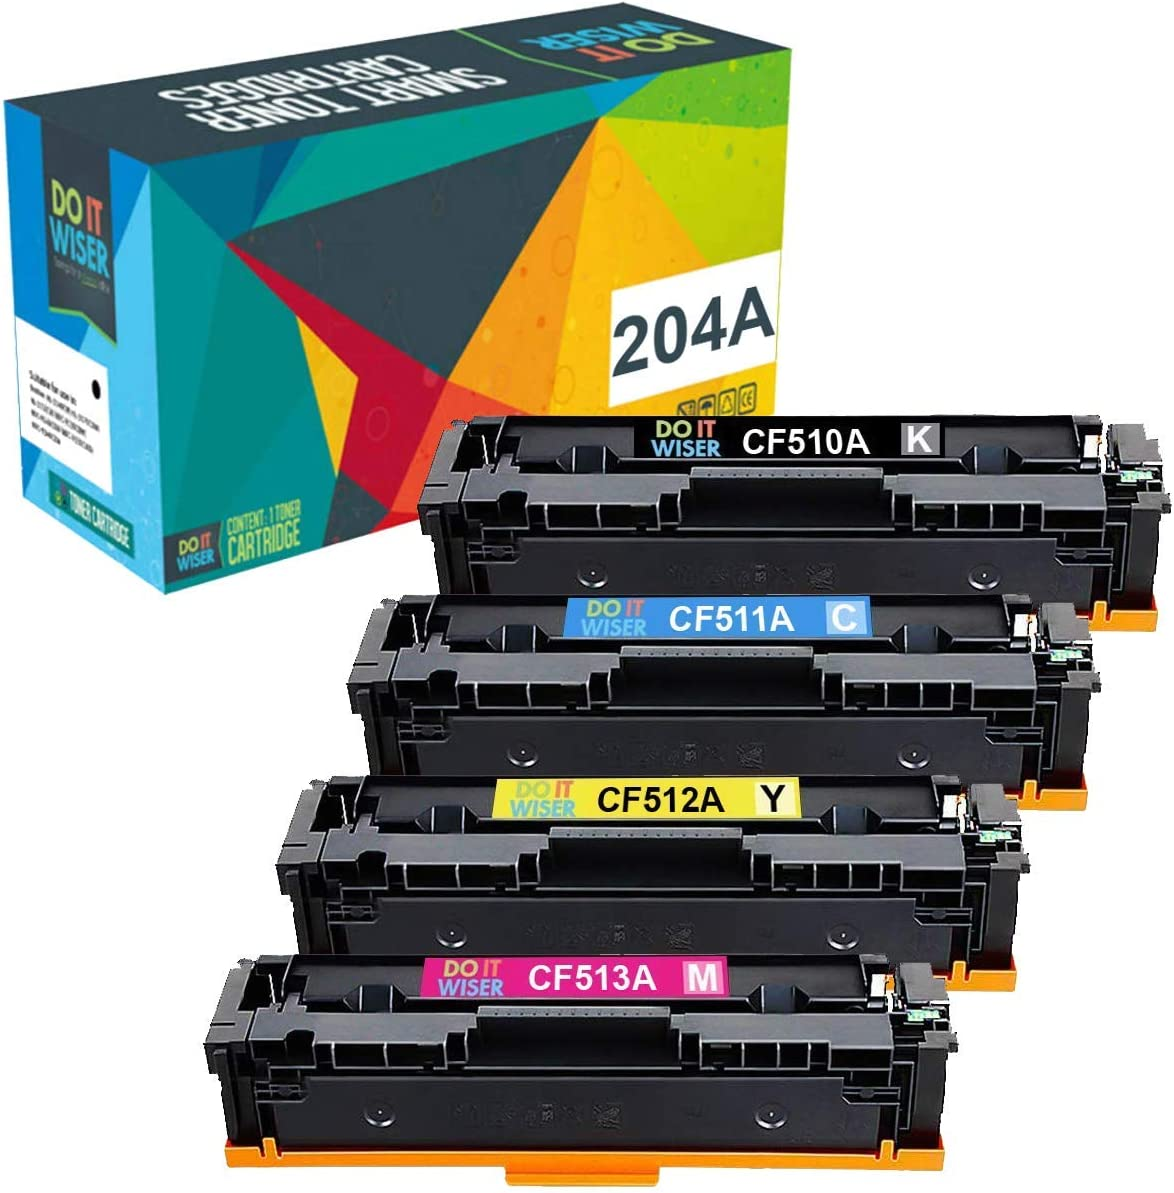 Do it Wiser Compatible Toner Cartridge Replacement for HP 204A CF510A CF511A CF512A CF513A Pro MFP M180n M180nw M181 M181fw M154a M154nw Color Laserjet Pro Printer (4-Pack)